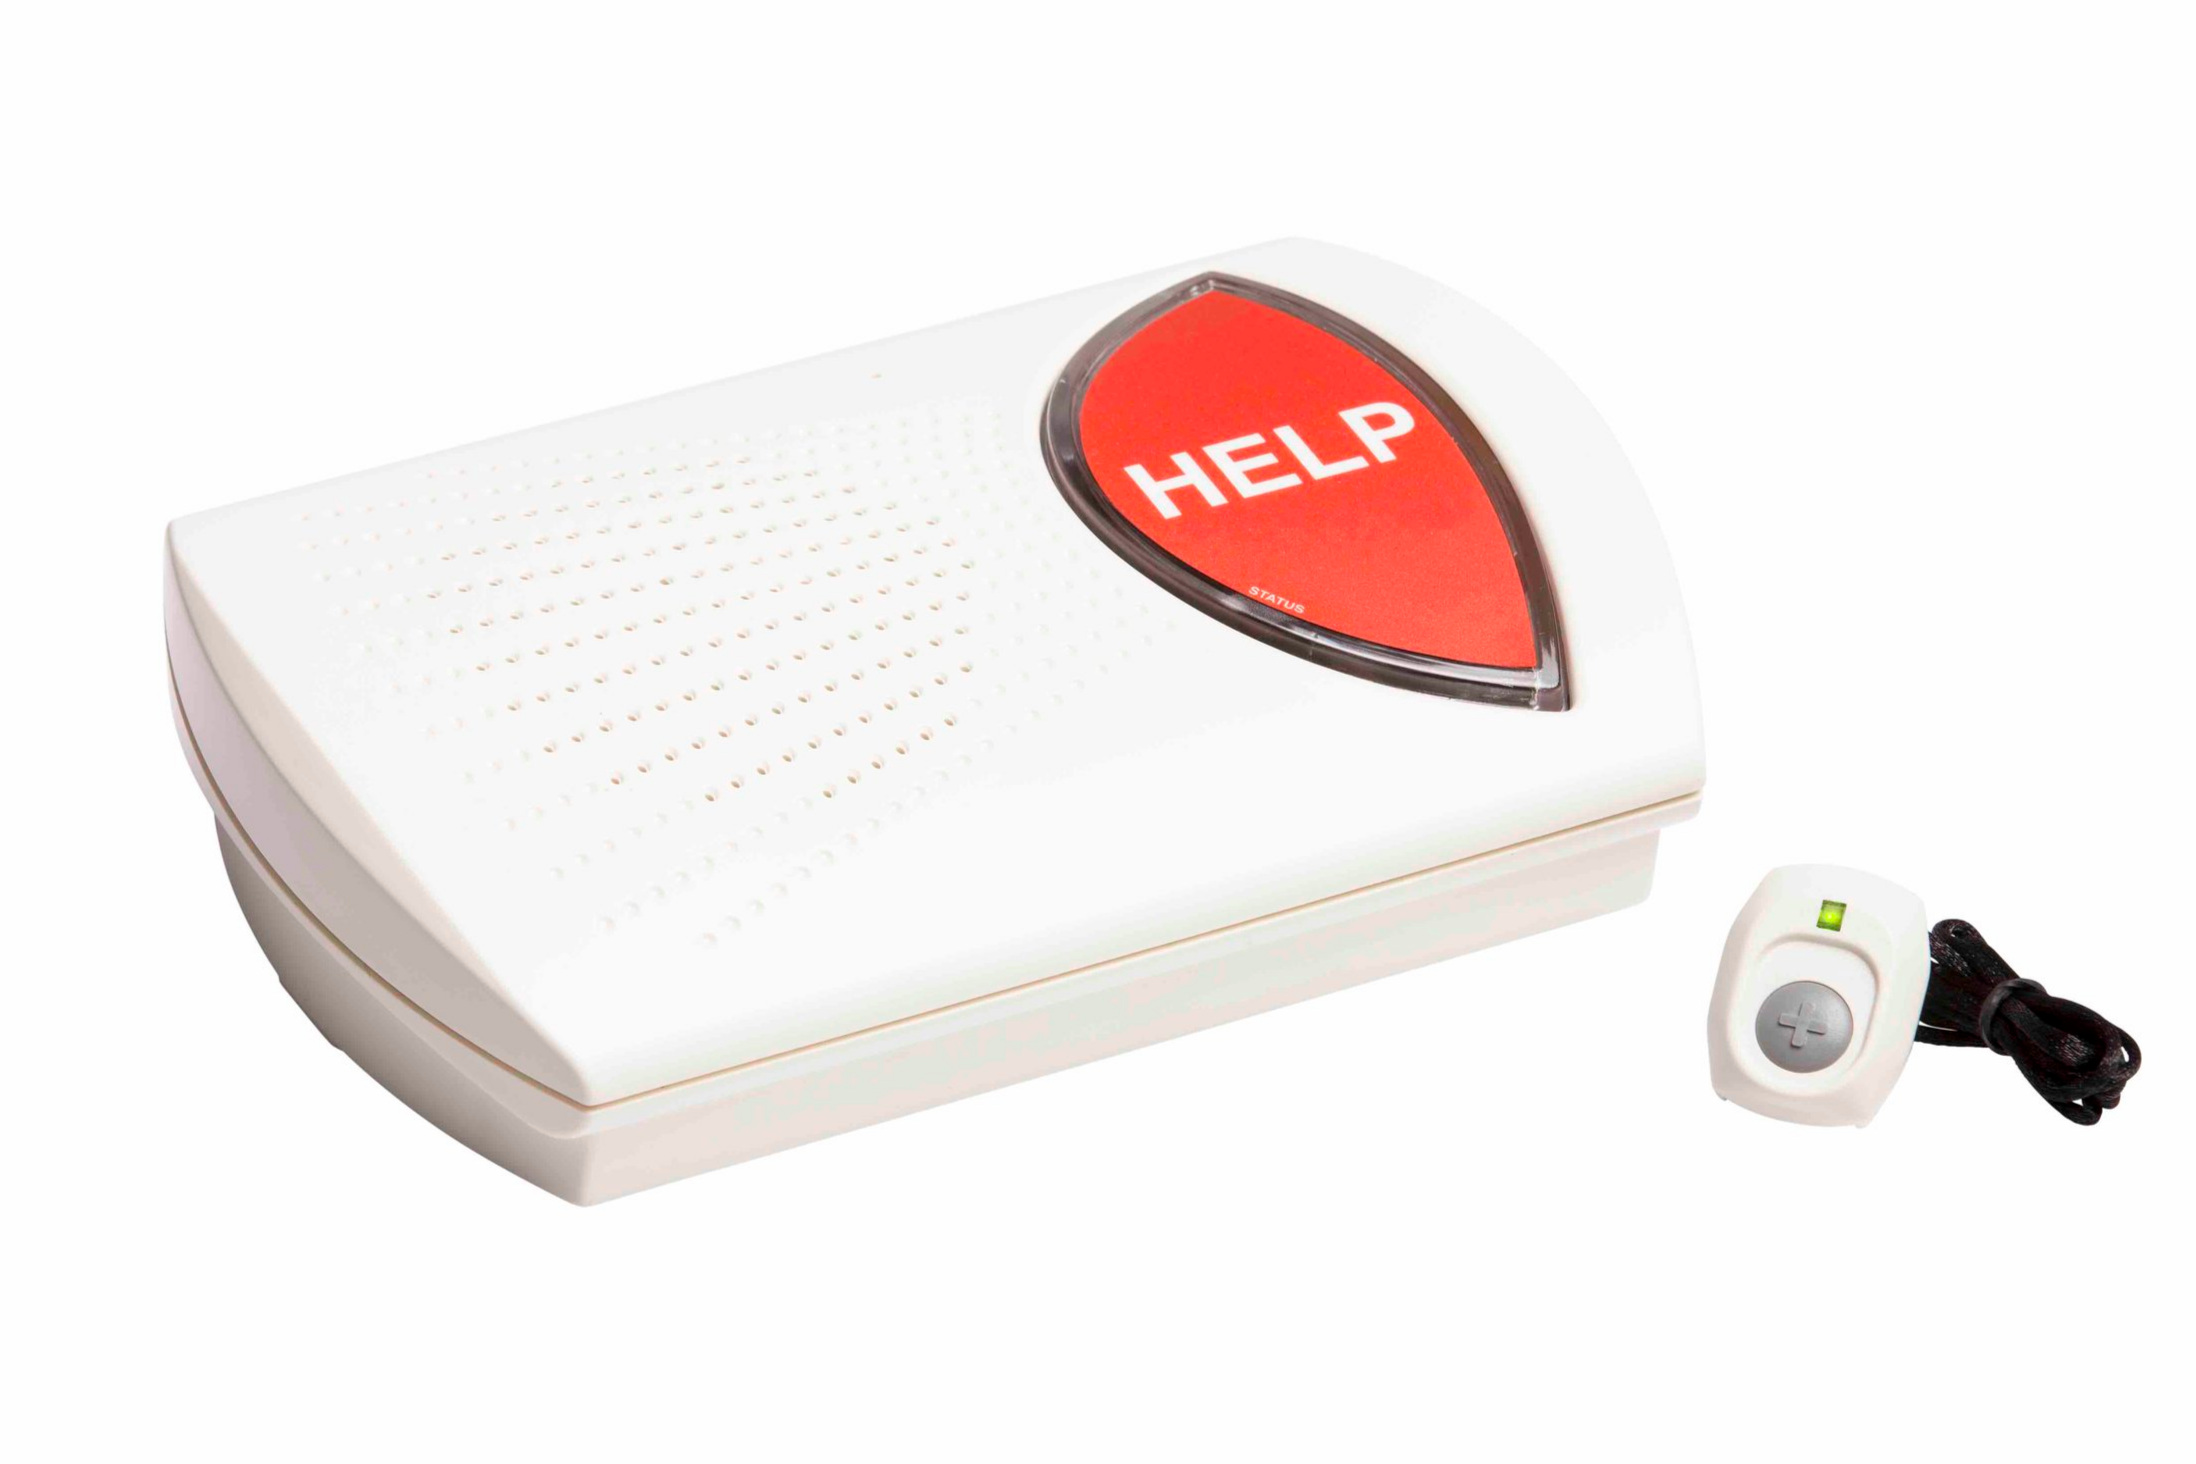 Cellular PERS unit with personal help button.